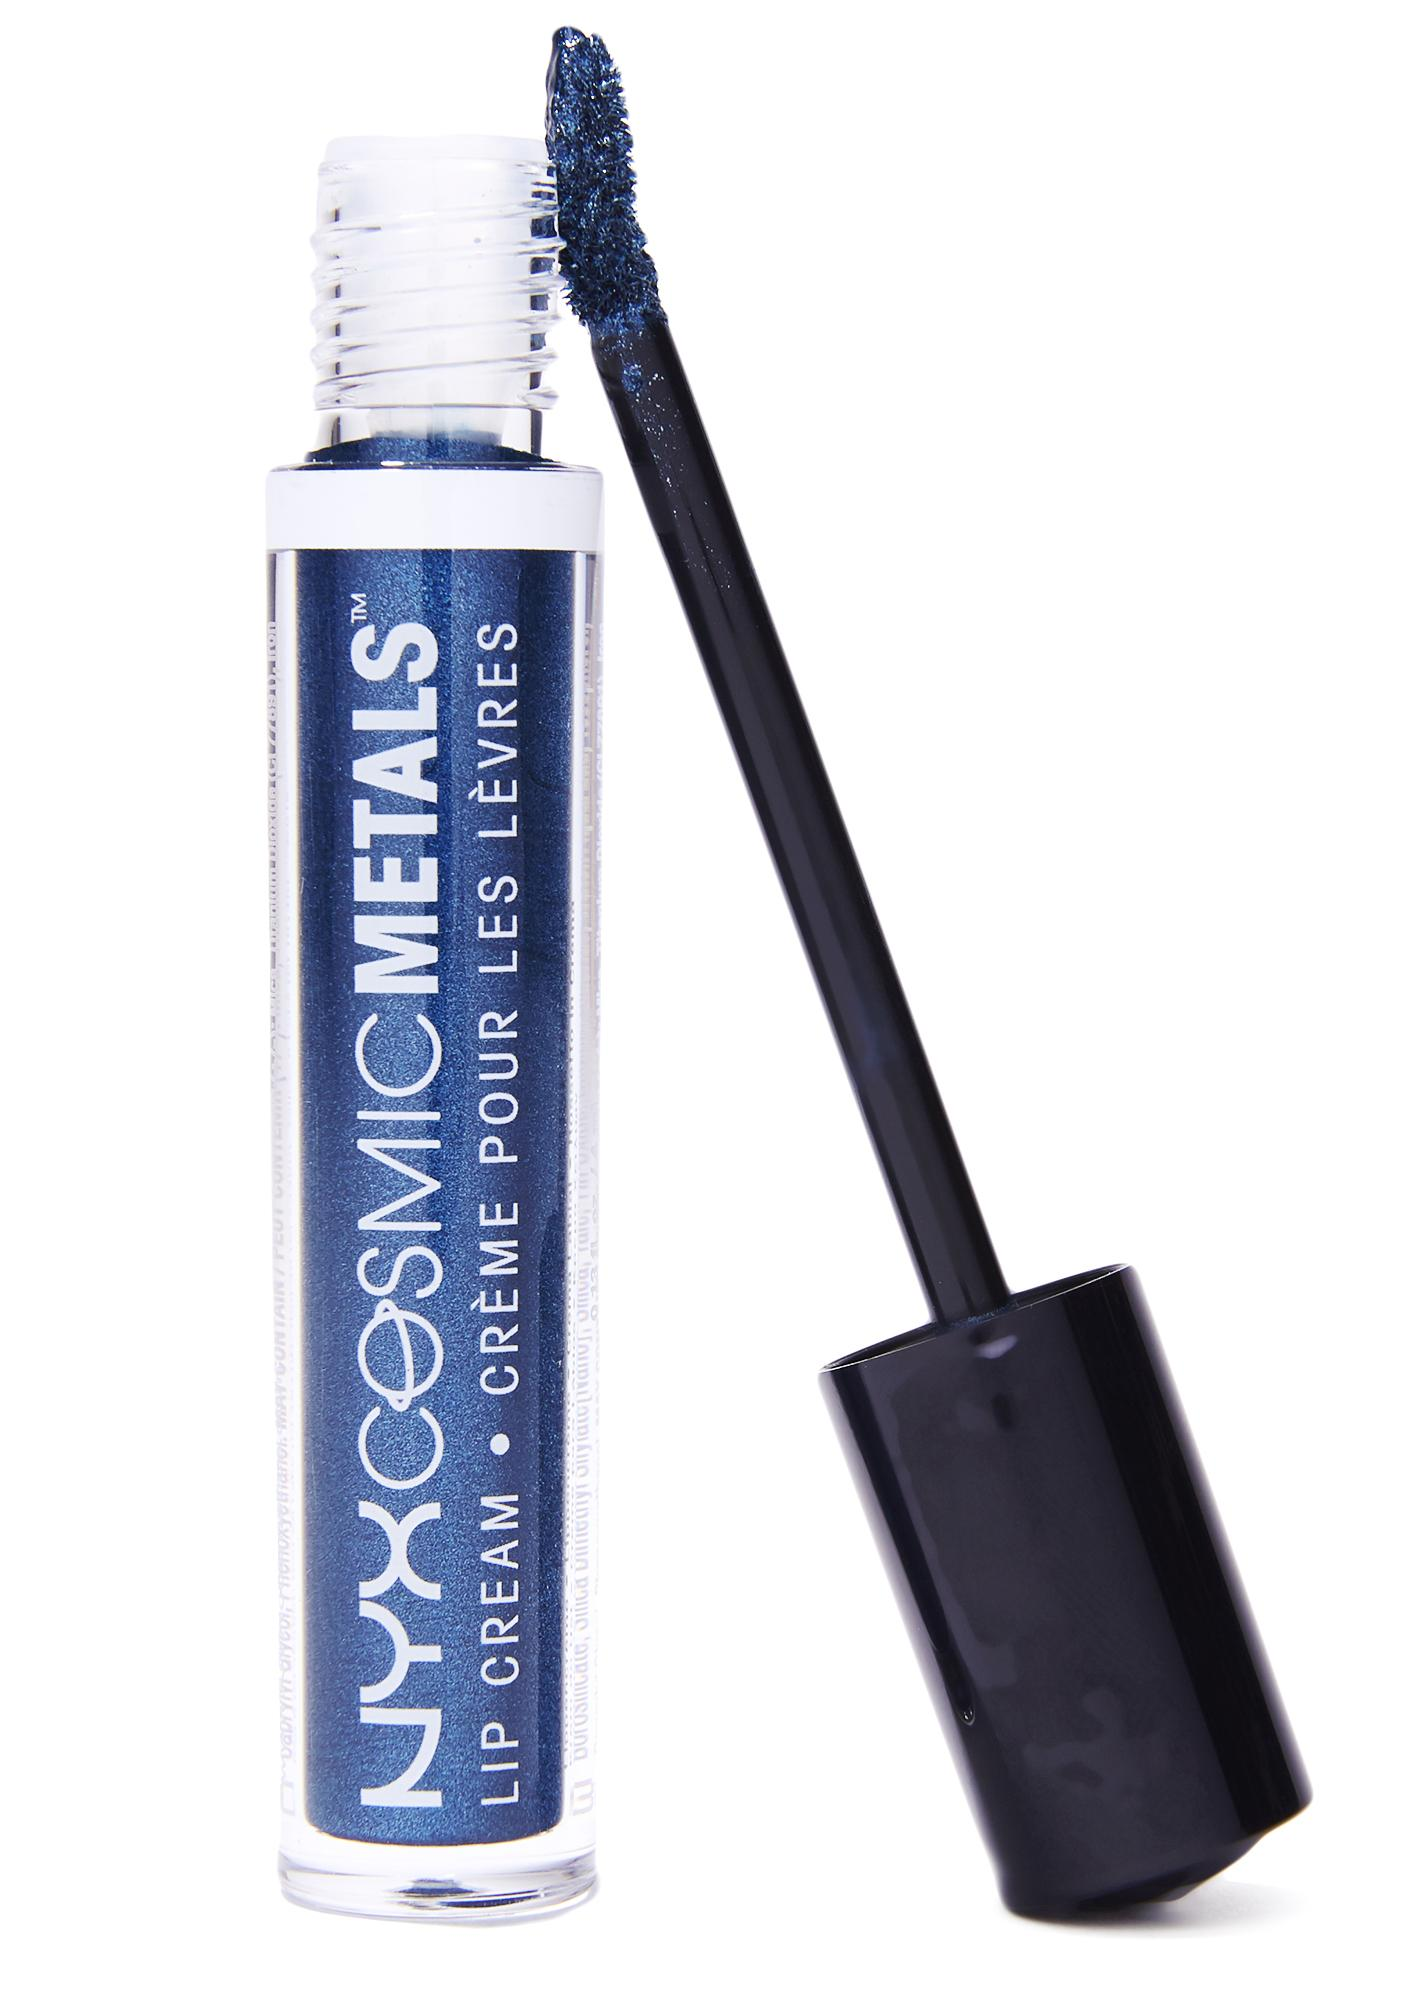 NYX Dark Nebula Cosmic Metals Lip Cream